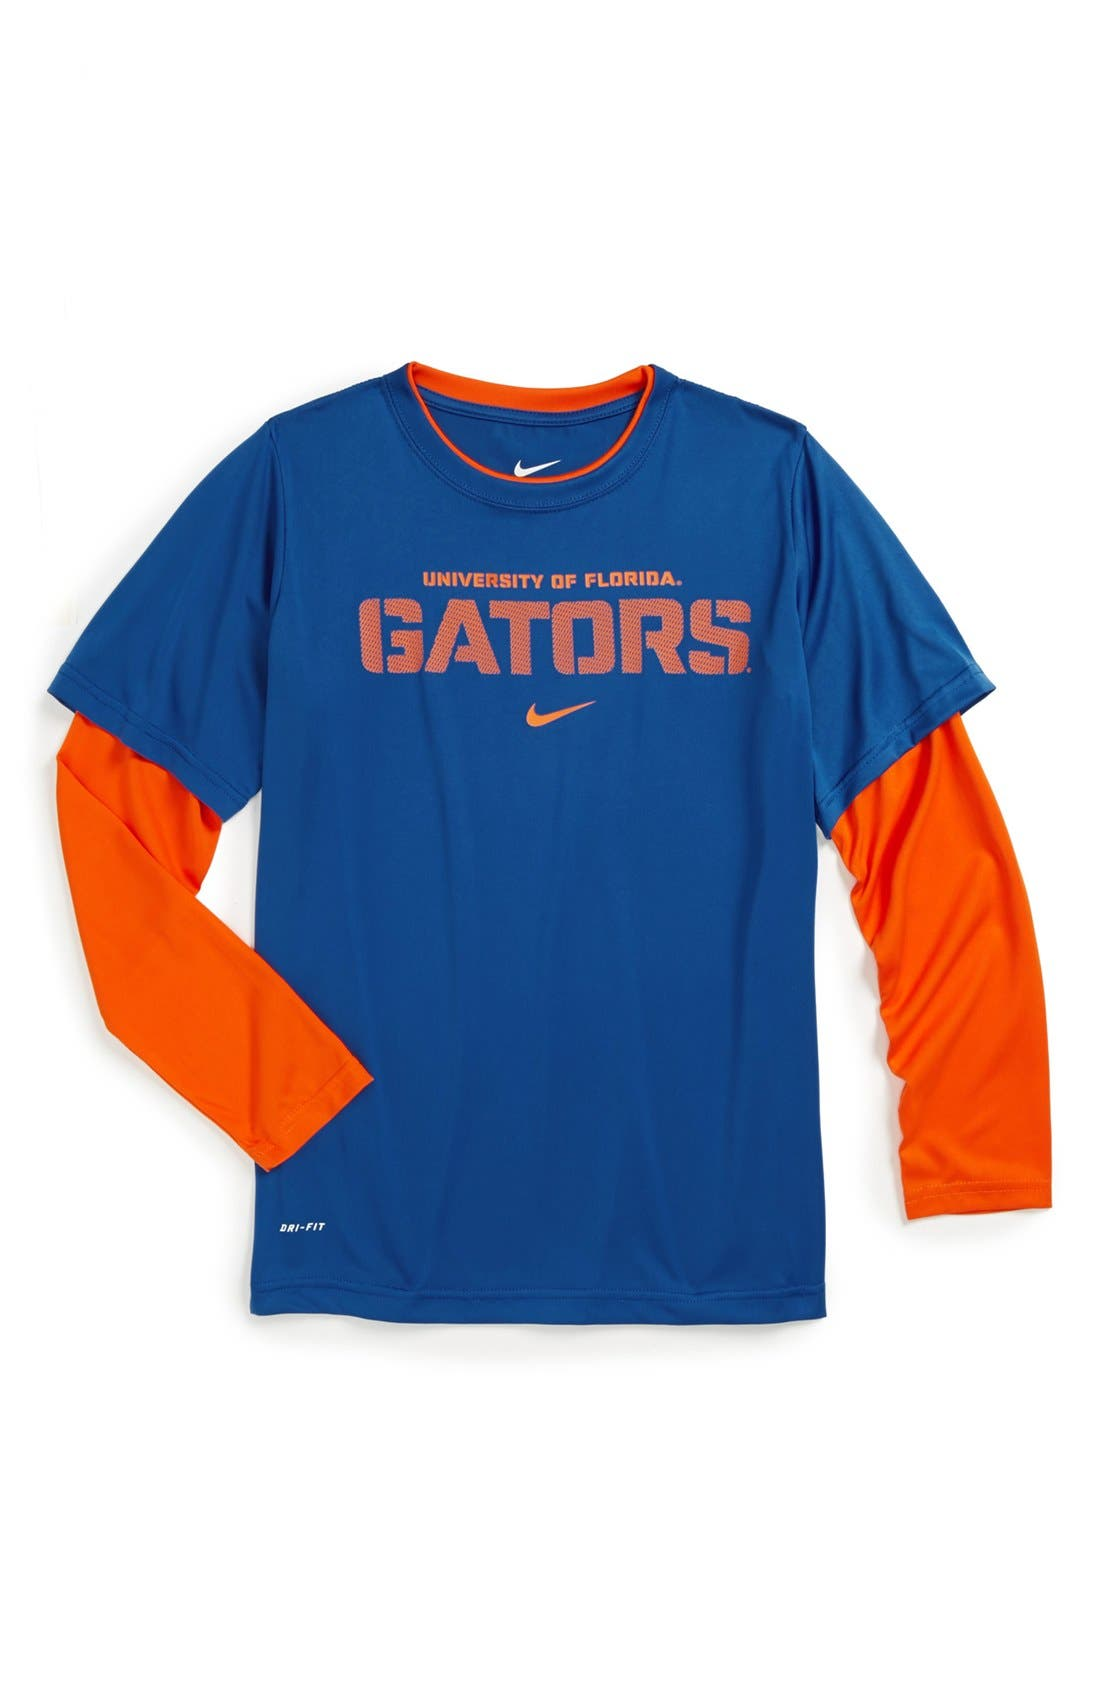 Main Image - Nike 'University of Florida Gators' Dri-FIT Layered Sleeve Sport T-Shirt (Big Boys)